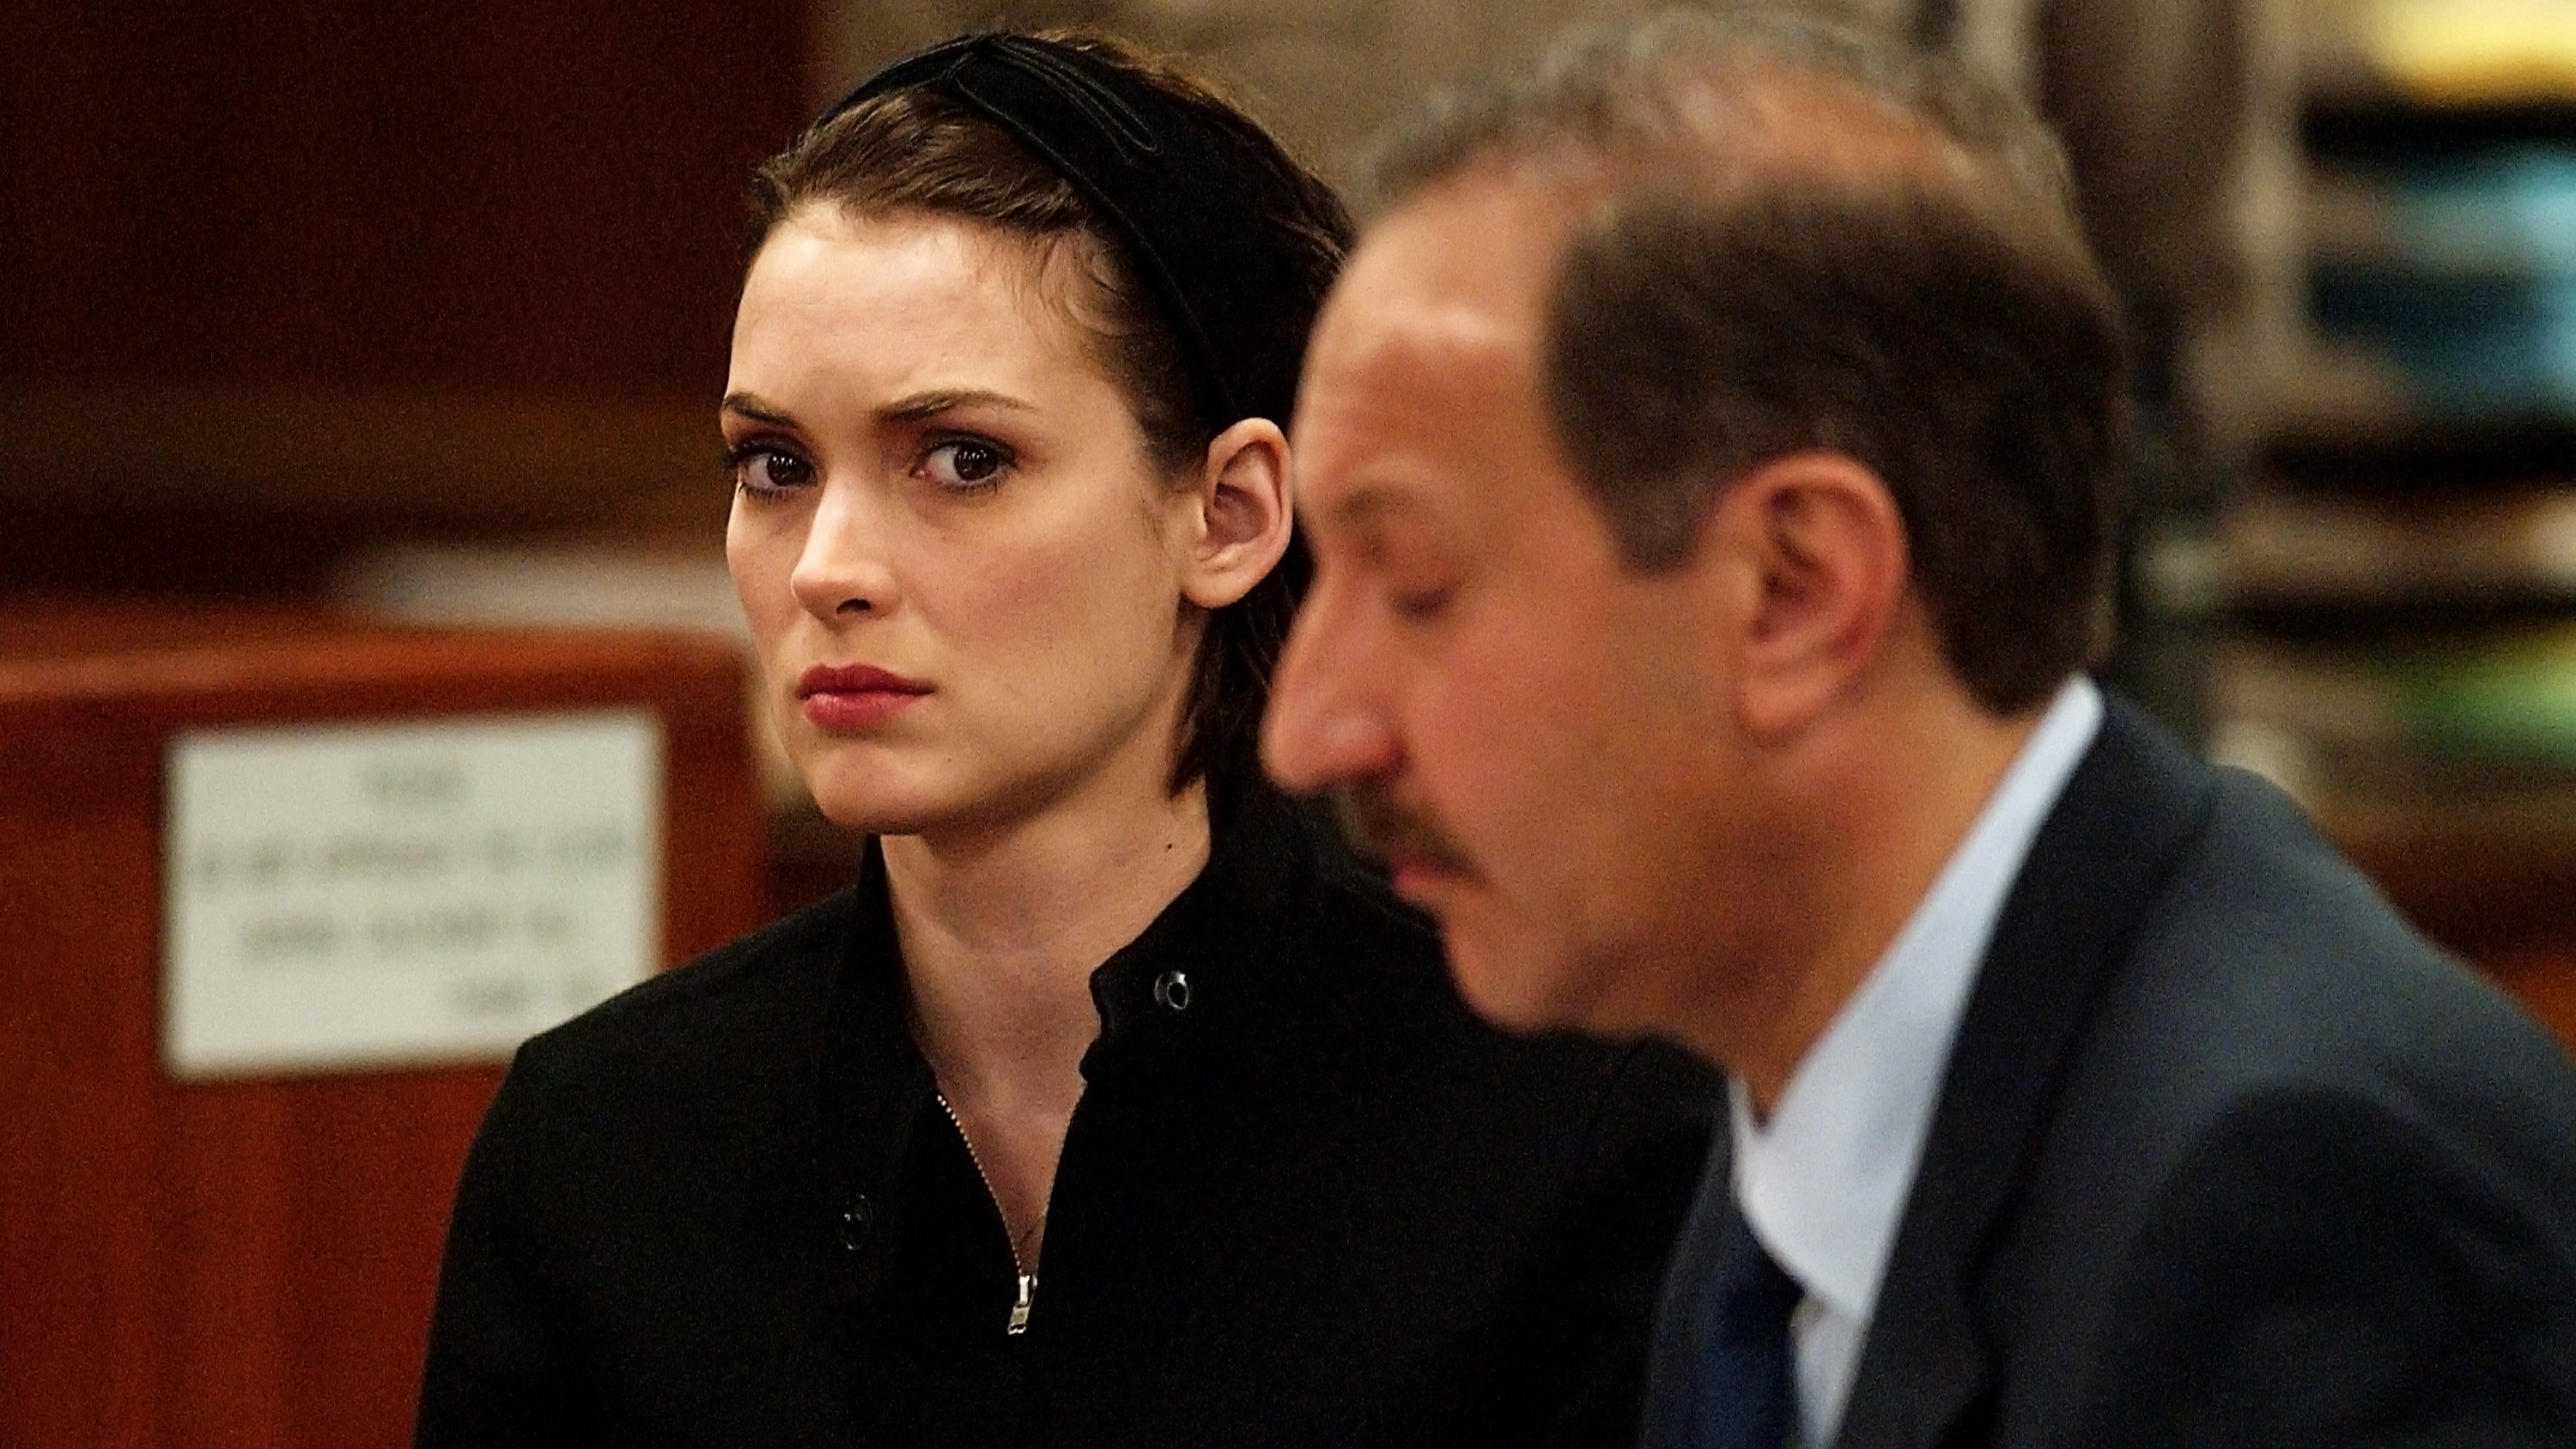 Winona Ryder and 7 Other Celebrities Who Have Been Caught Stealing